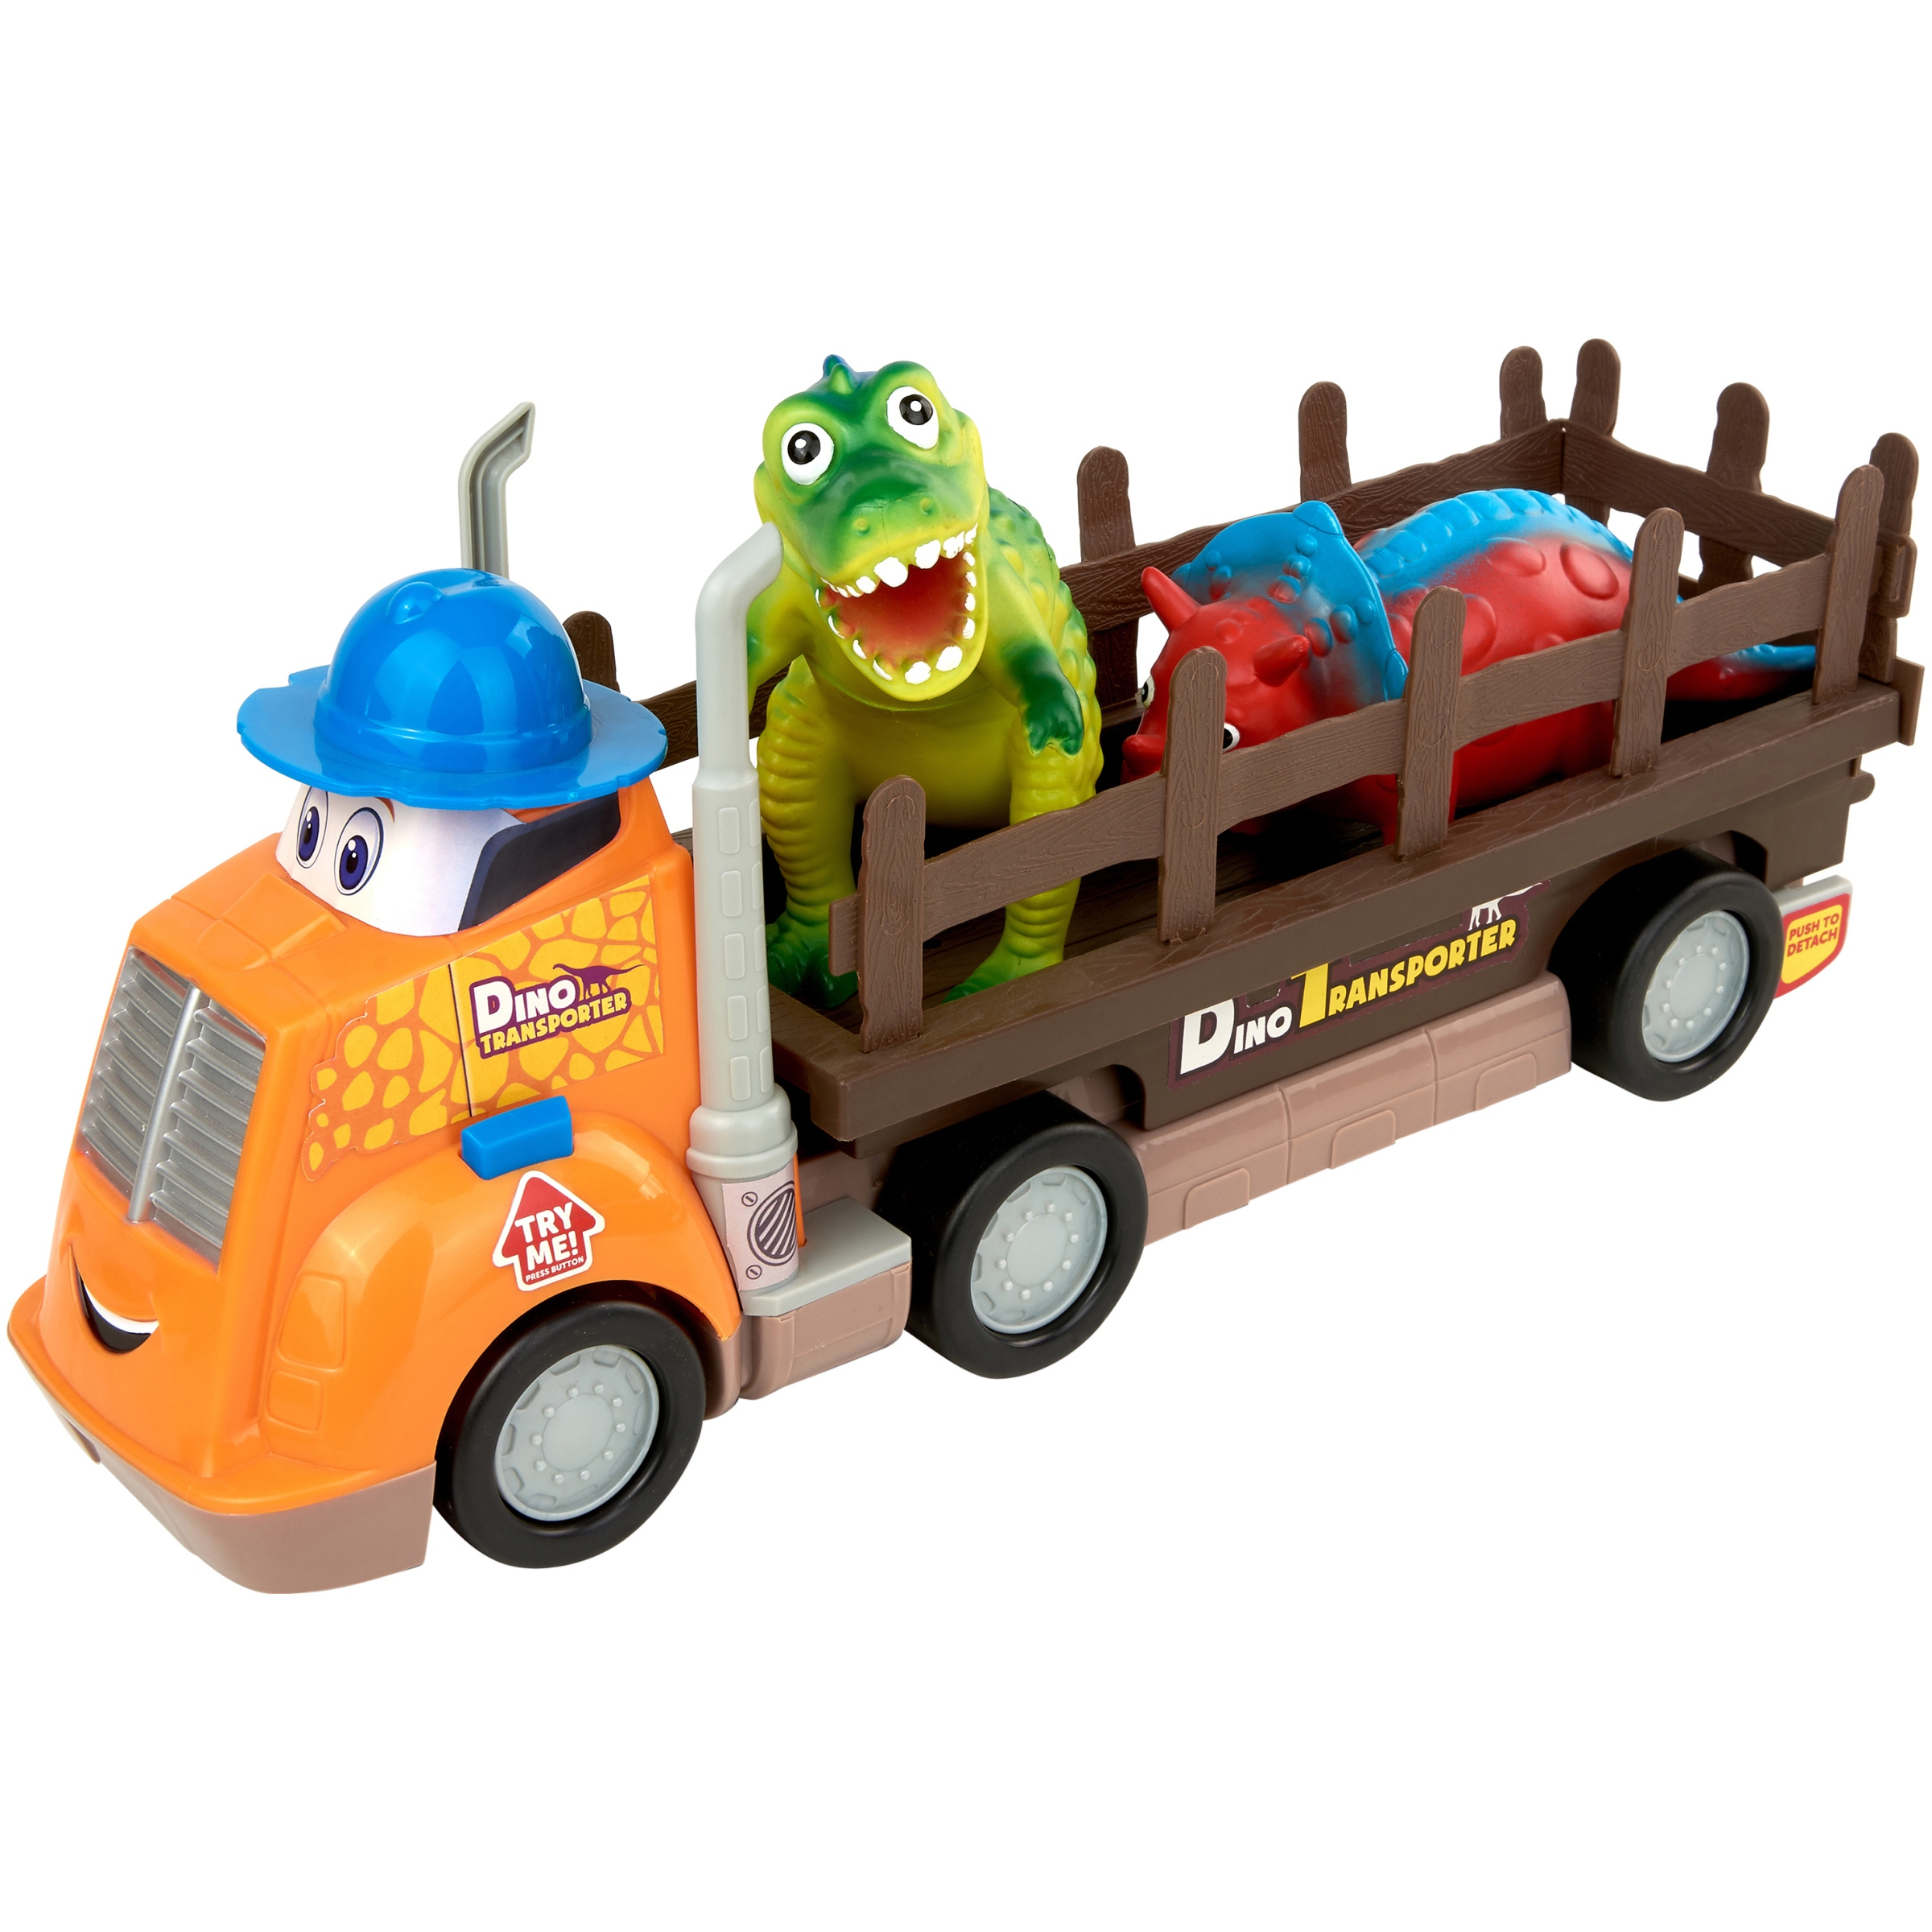 Kid Connection Dino Buddies Transporter with Dino Figures